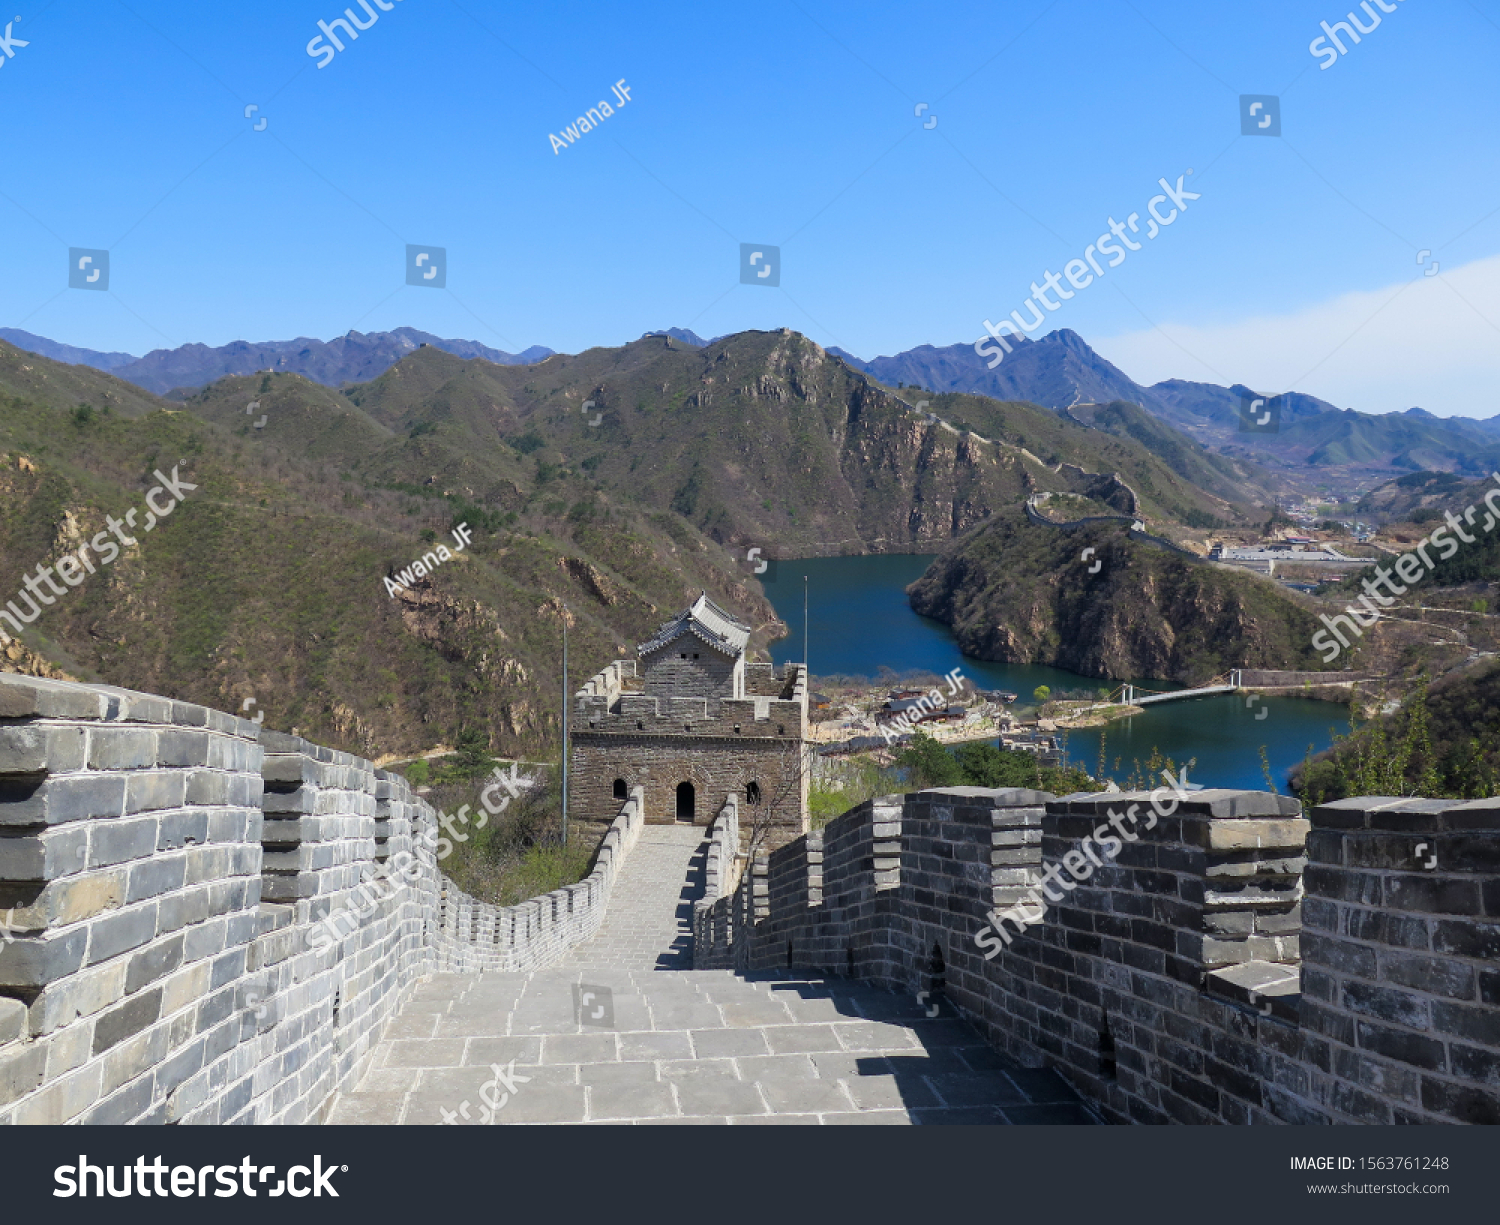 stock-photo-beautiful-view-of-the-great-